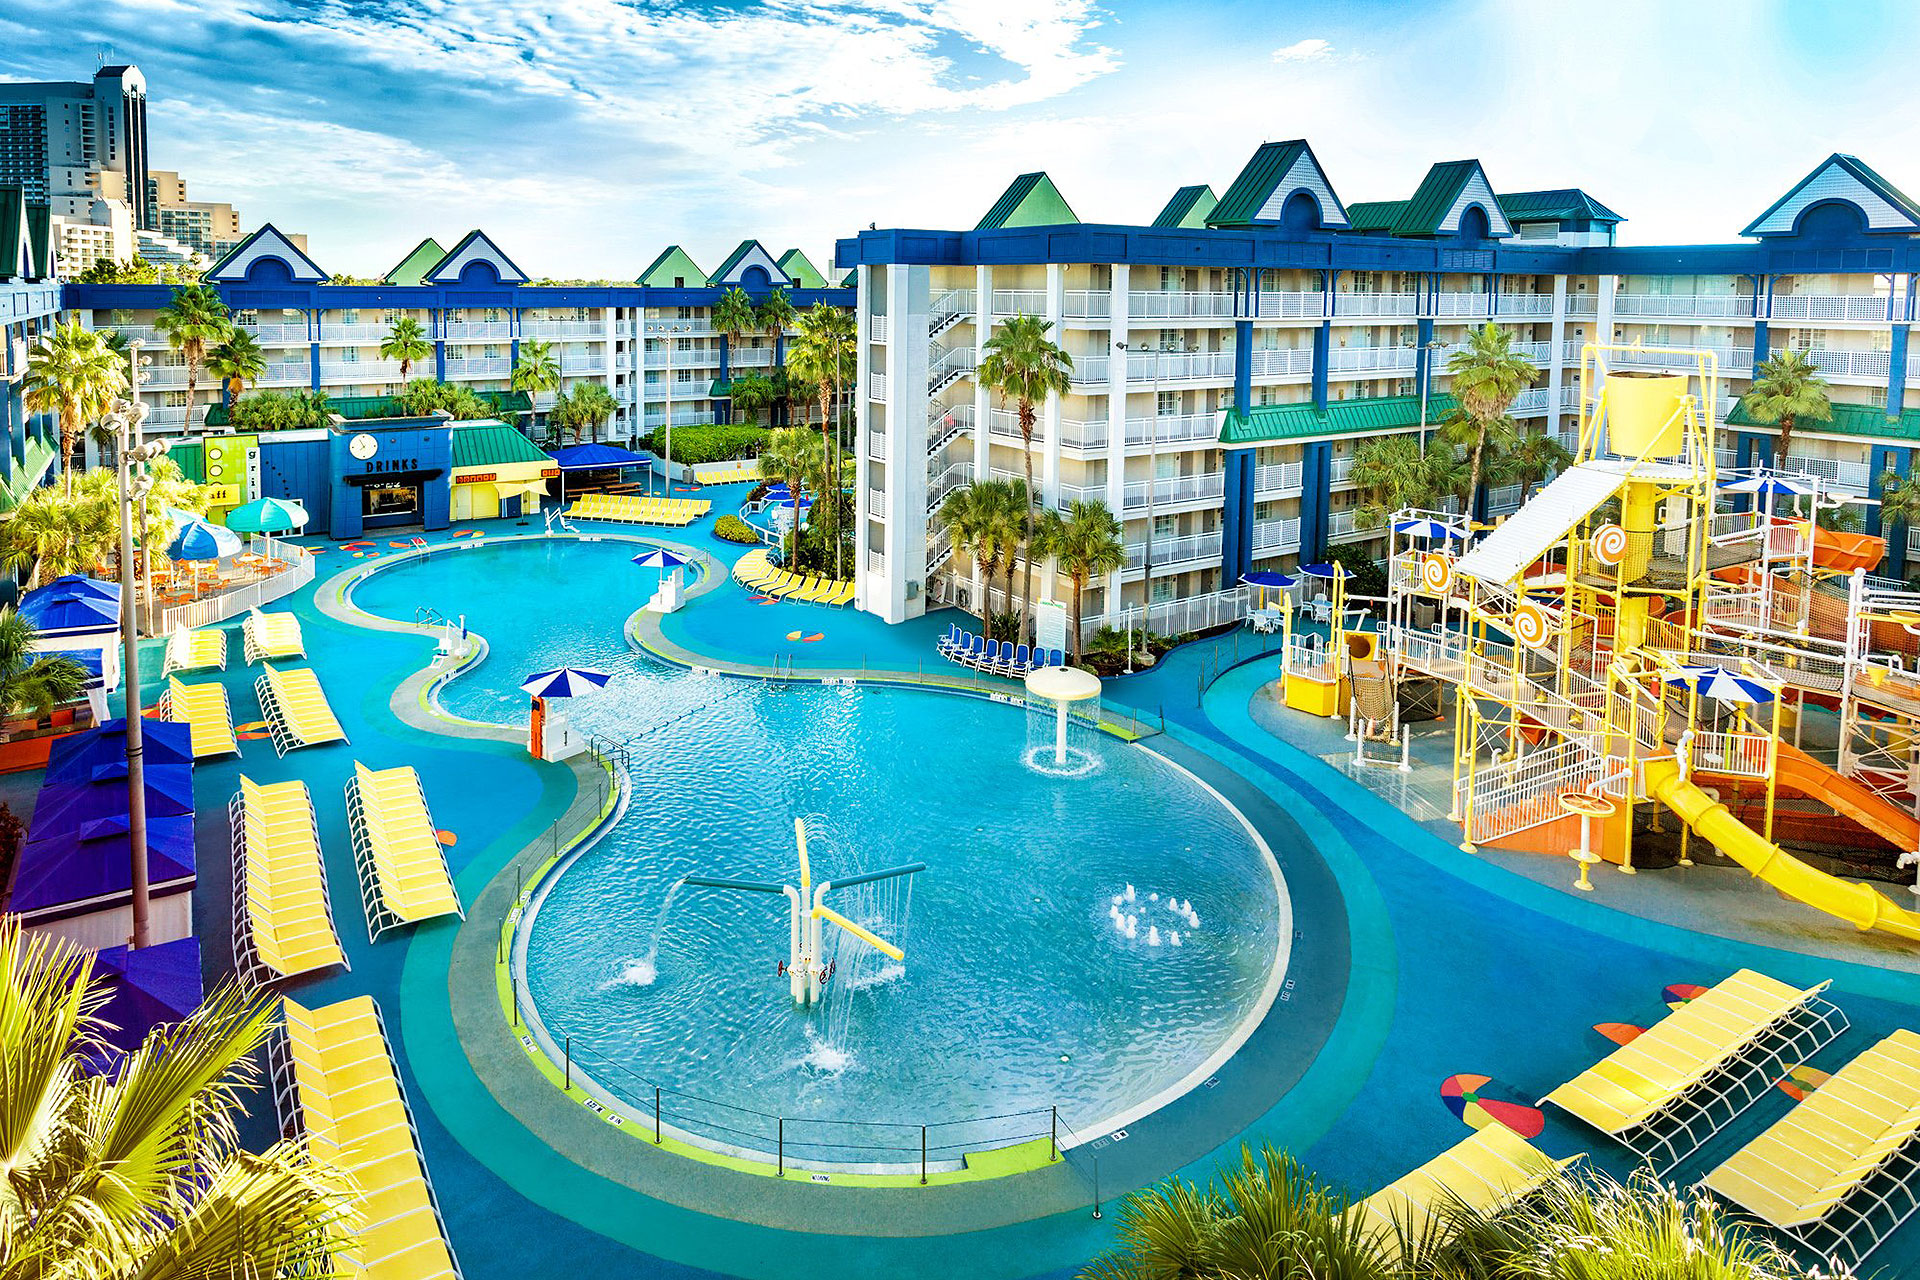 Water Park at Holiday Inn Orlando Suites - Waterpark; Courtesy of Holiday Inn Orlando Suites - Waterpark